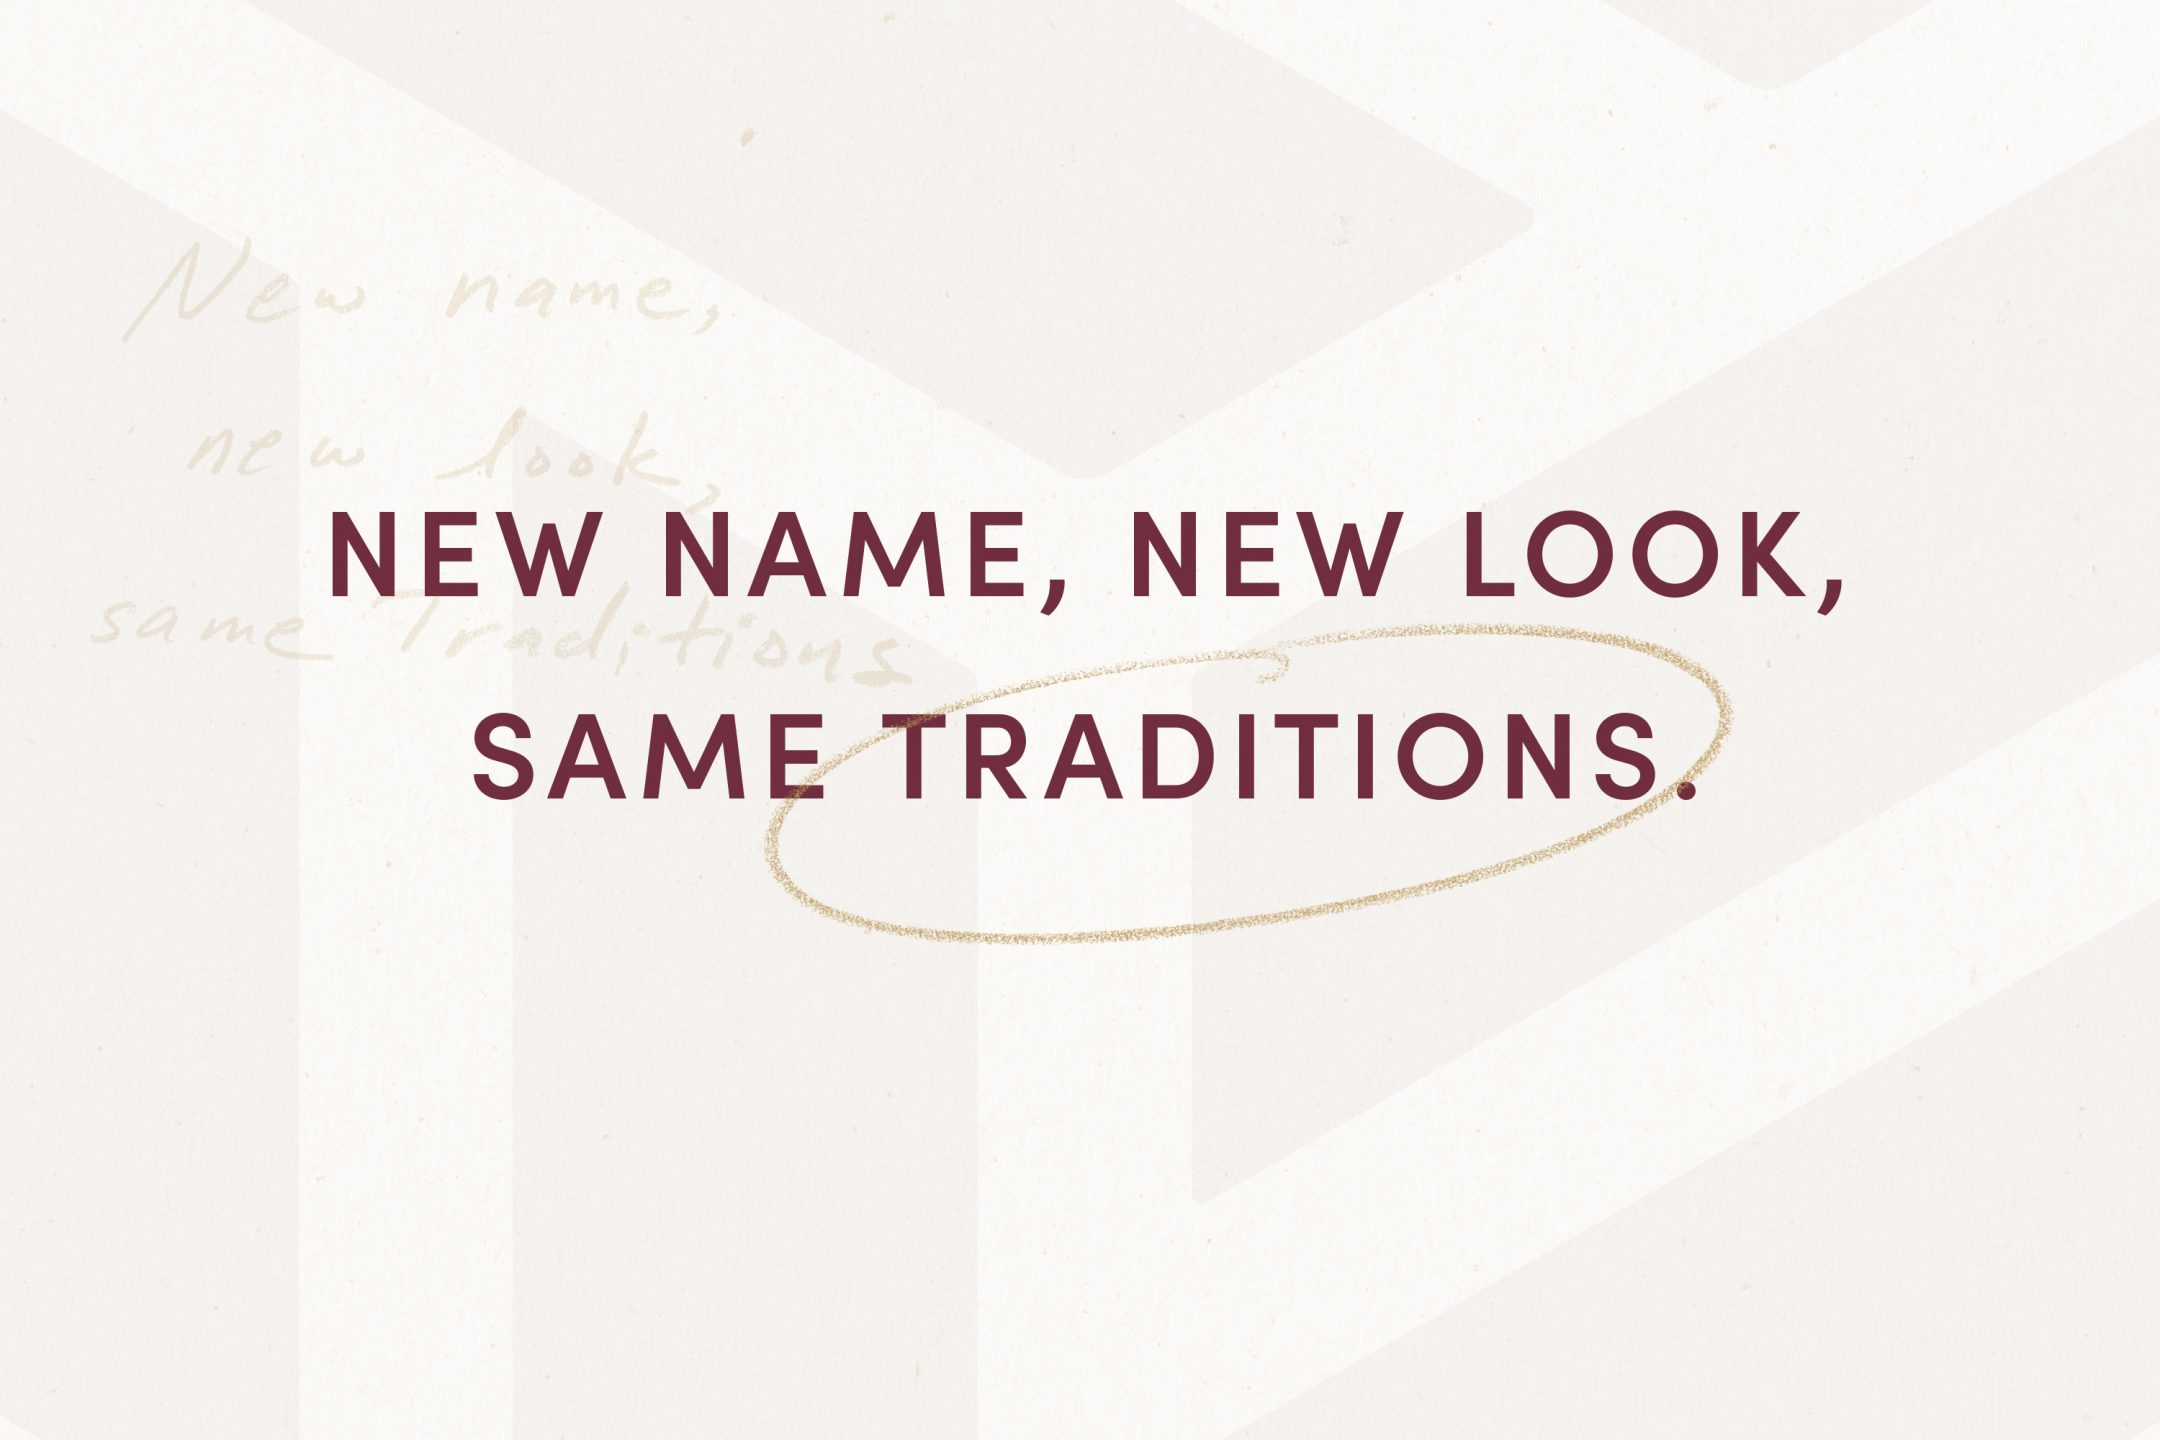 New name, new look, same traditions